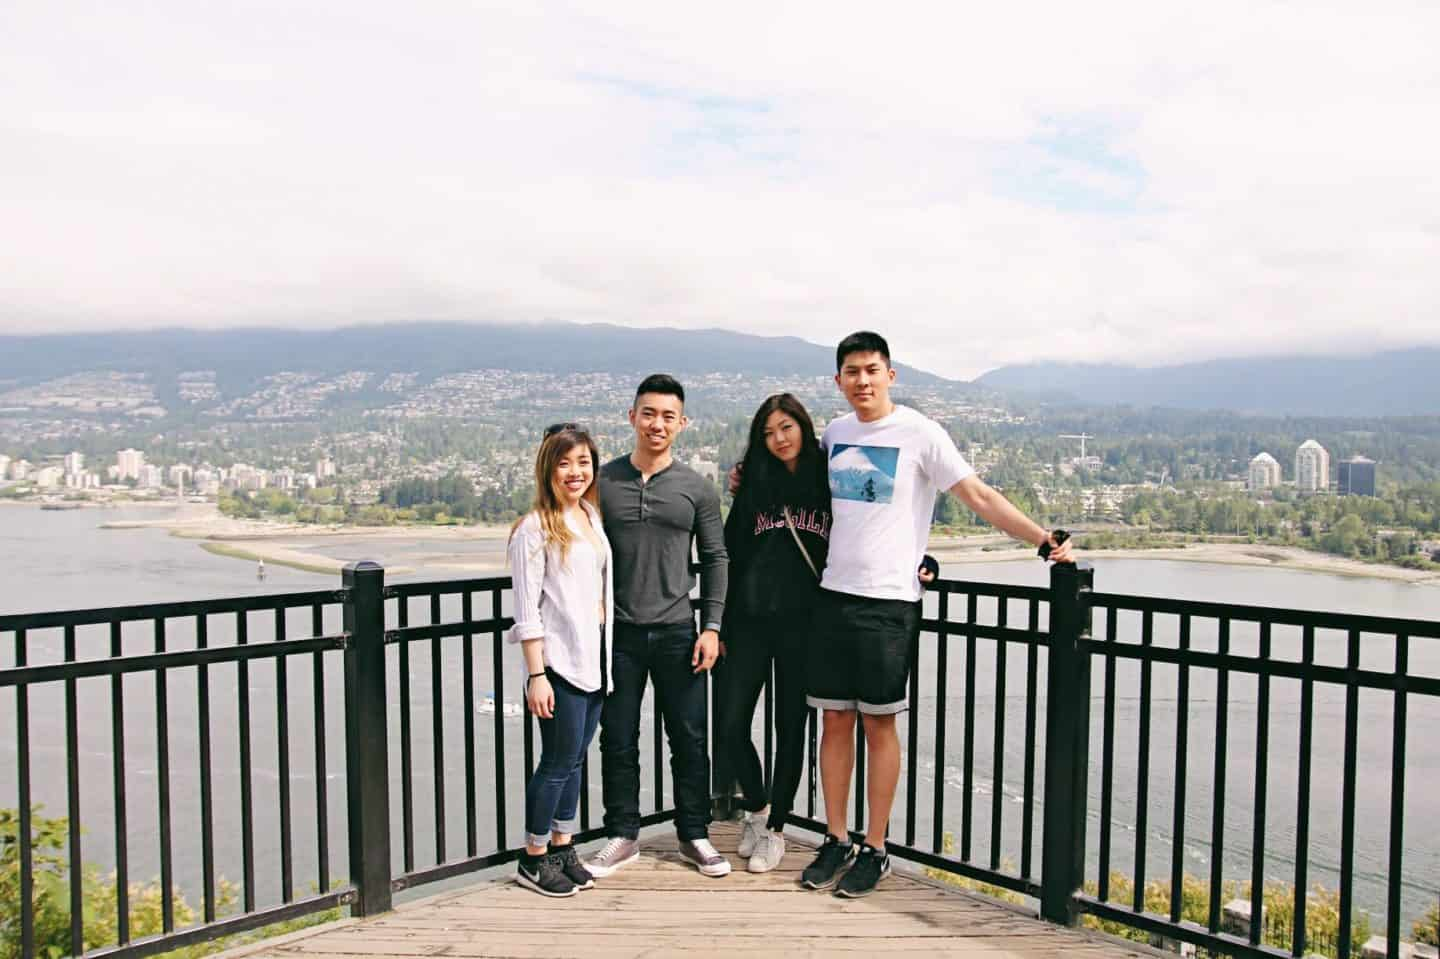 Stanley Park Lookout, Vancouver, British Columbia